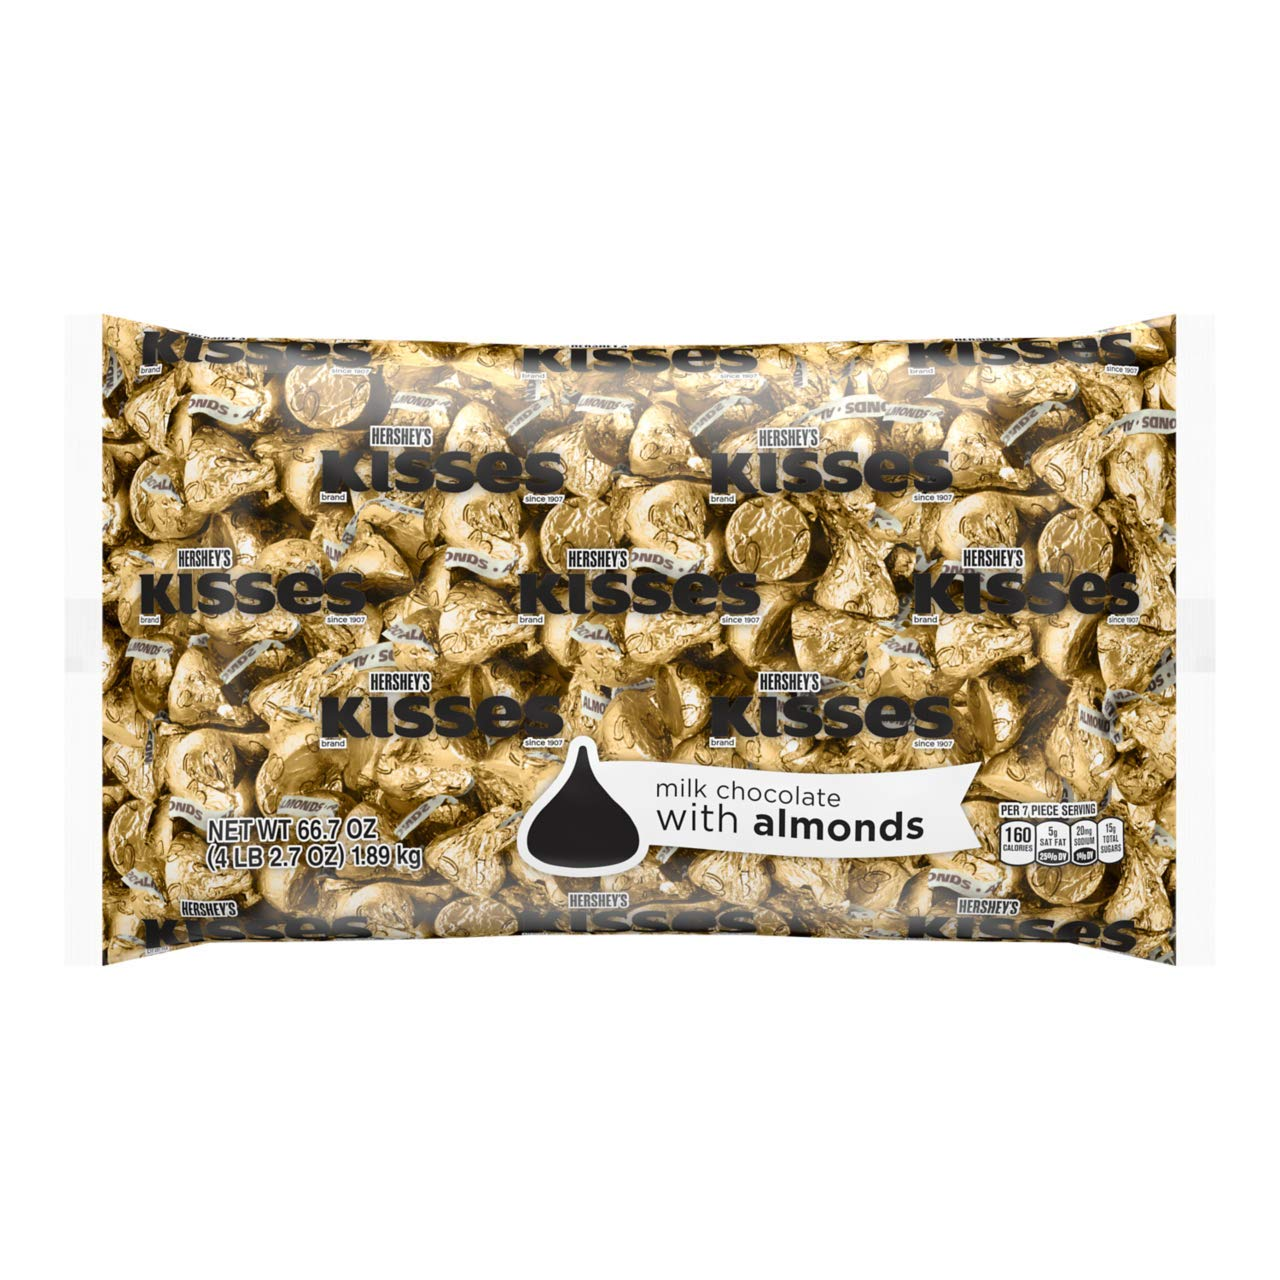 HERSHEY'S KISSES Halloween Chocolate Candy with Almonds Gold Foil, 4.1 lb Bulk Bag by Kisses